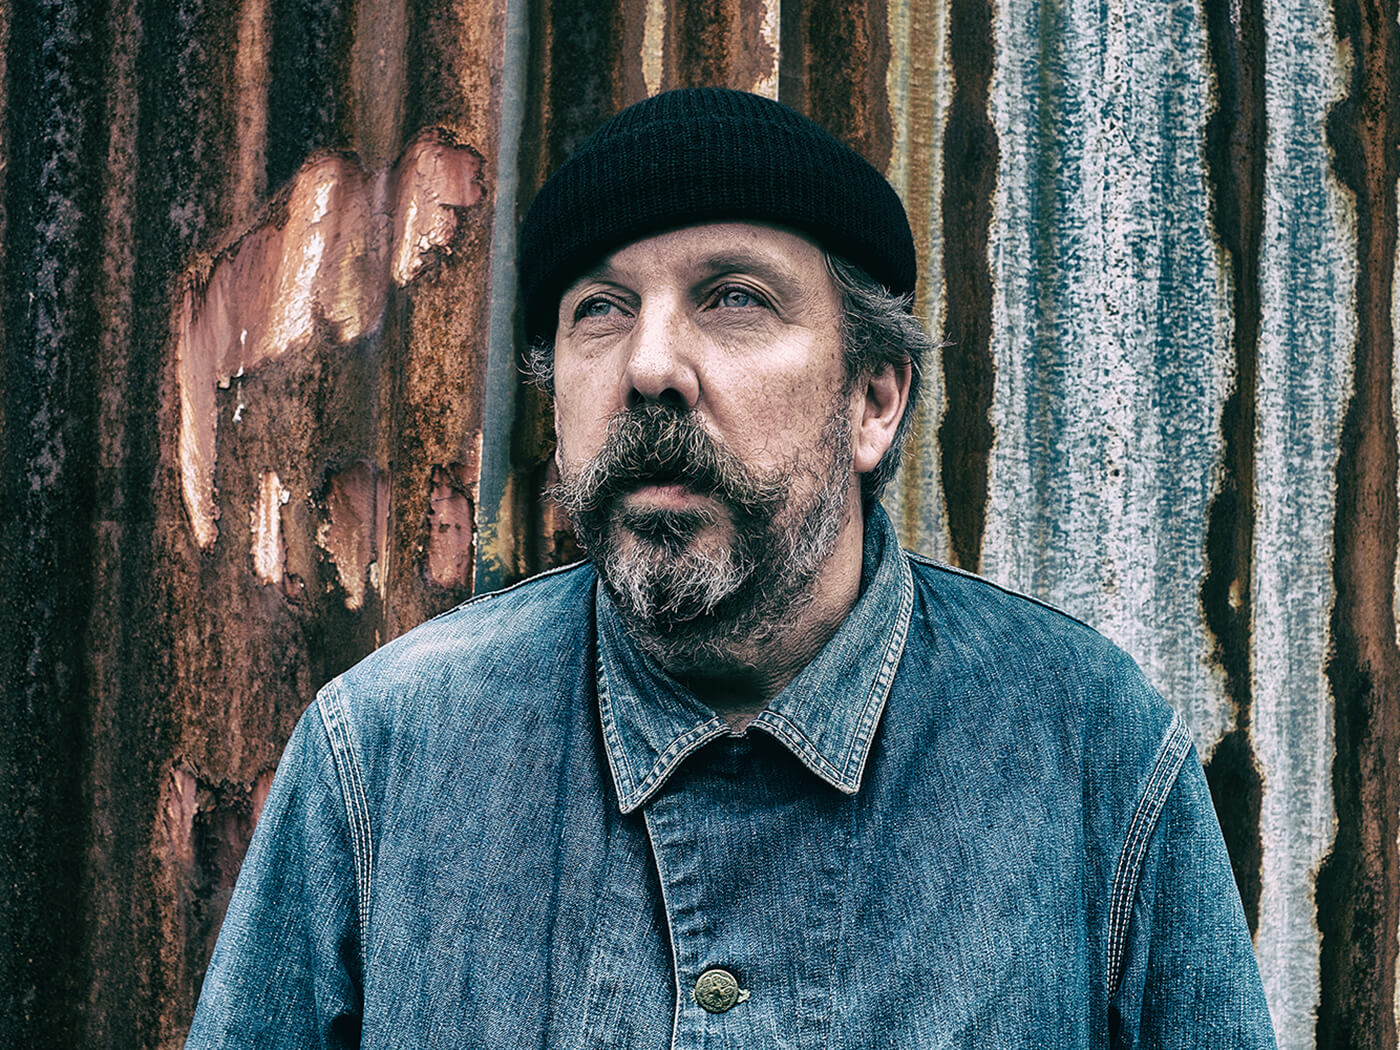 Andrew Weatherall has died, aged 56